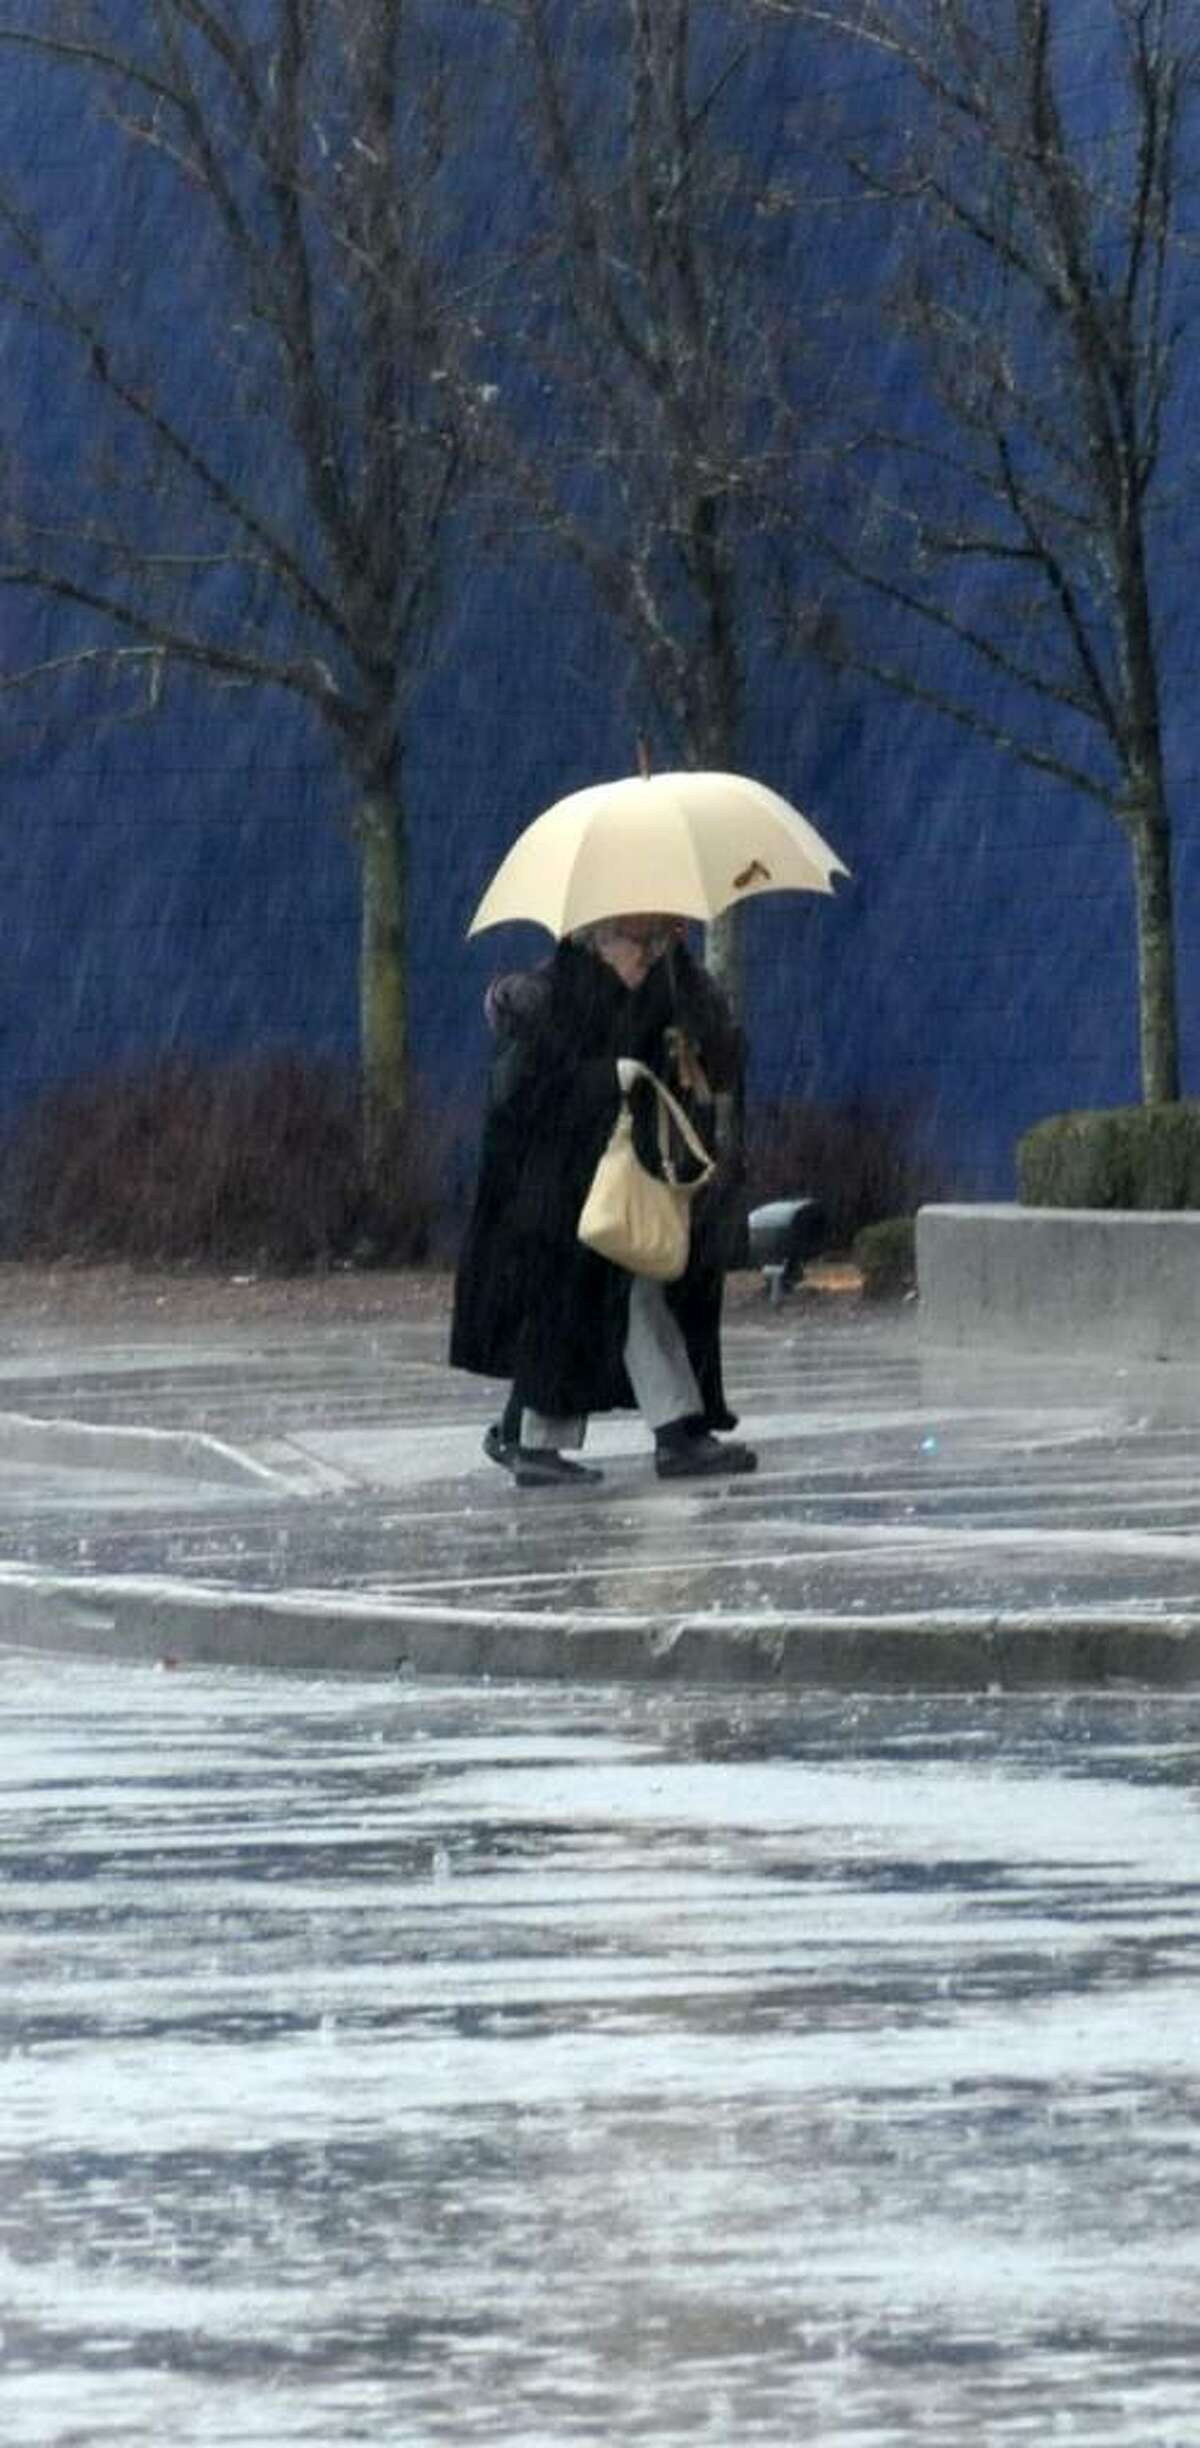 Rain didn't stop this unidentified couple from attending a movie at the AMC Loew's theater, in Danbury, CT, on Monday, Jan. 26, 2010.